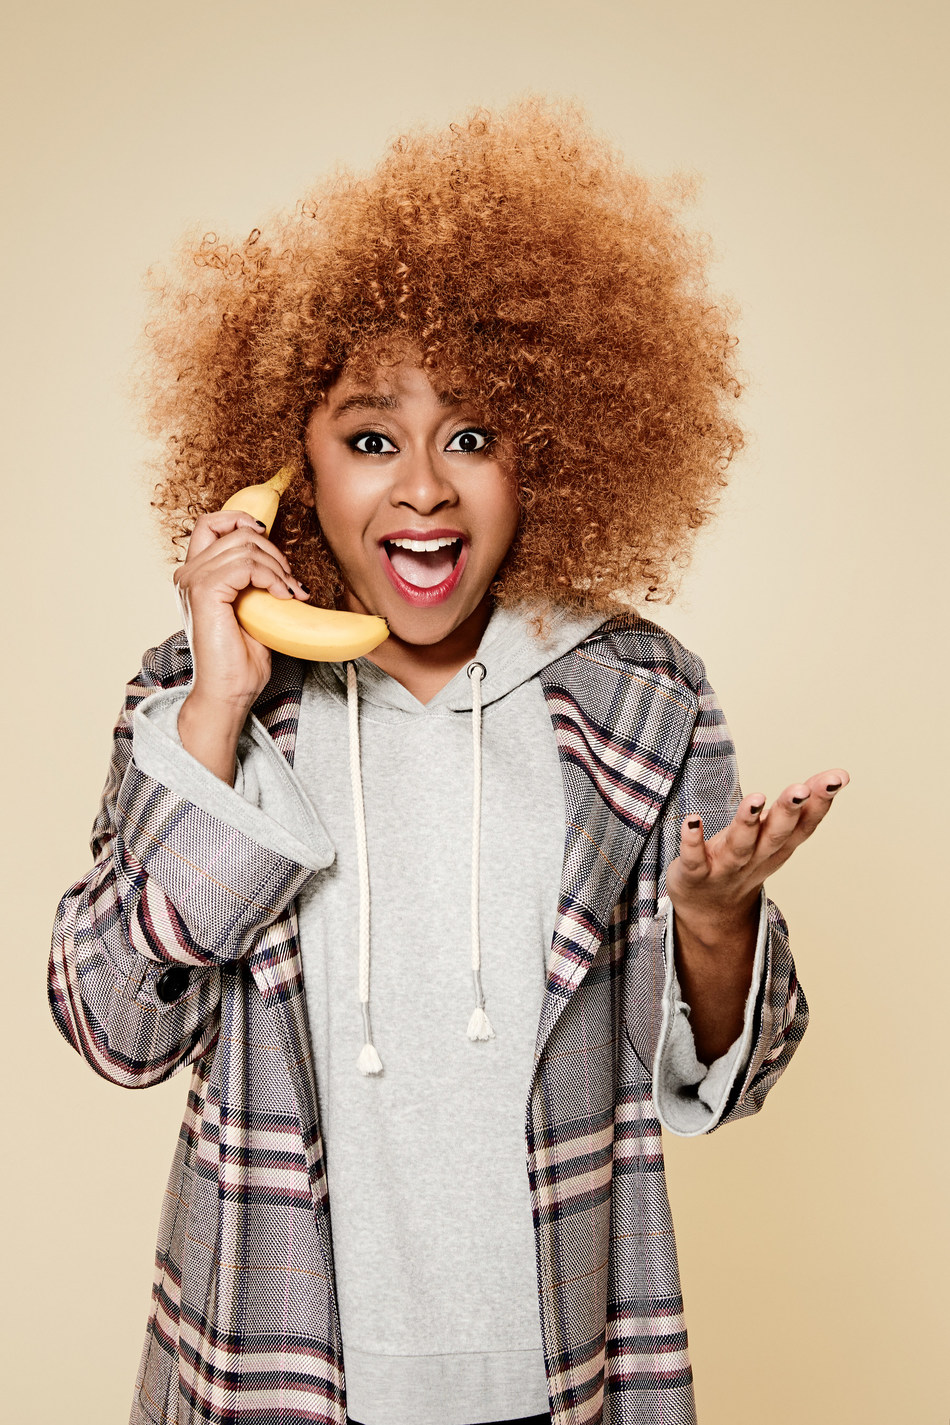 FASHION-SAVVY COMEDIANS EXPRESS A LIGHT-HEARTED SIDE OF NORDSTROM FOR THE RETAILER'S ONE-OF-A-KIND ANNIVERSARY SALE CAMPAIGN - Phoebe Robinson